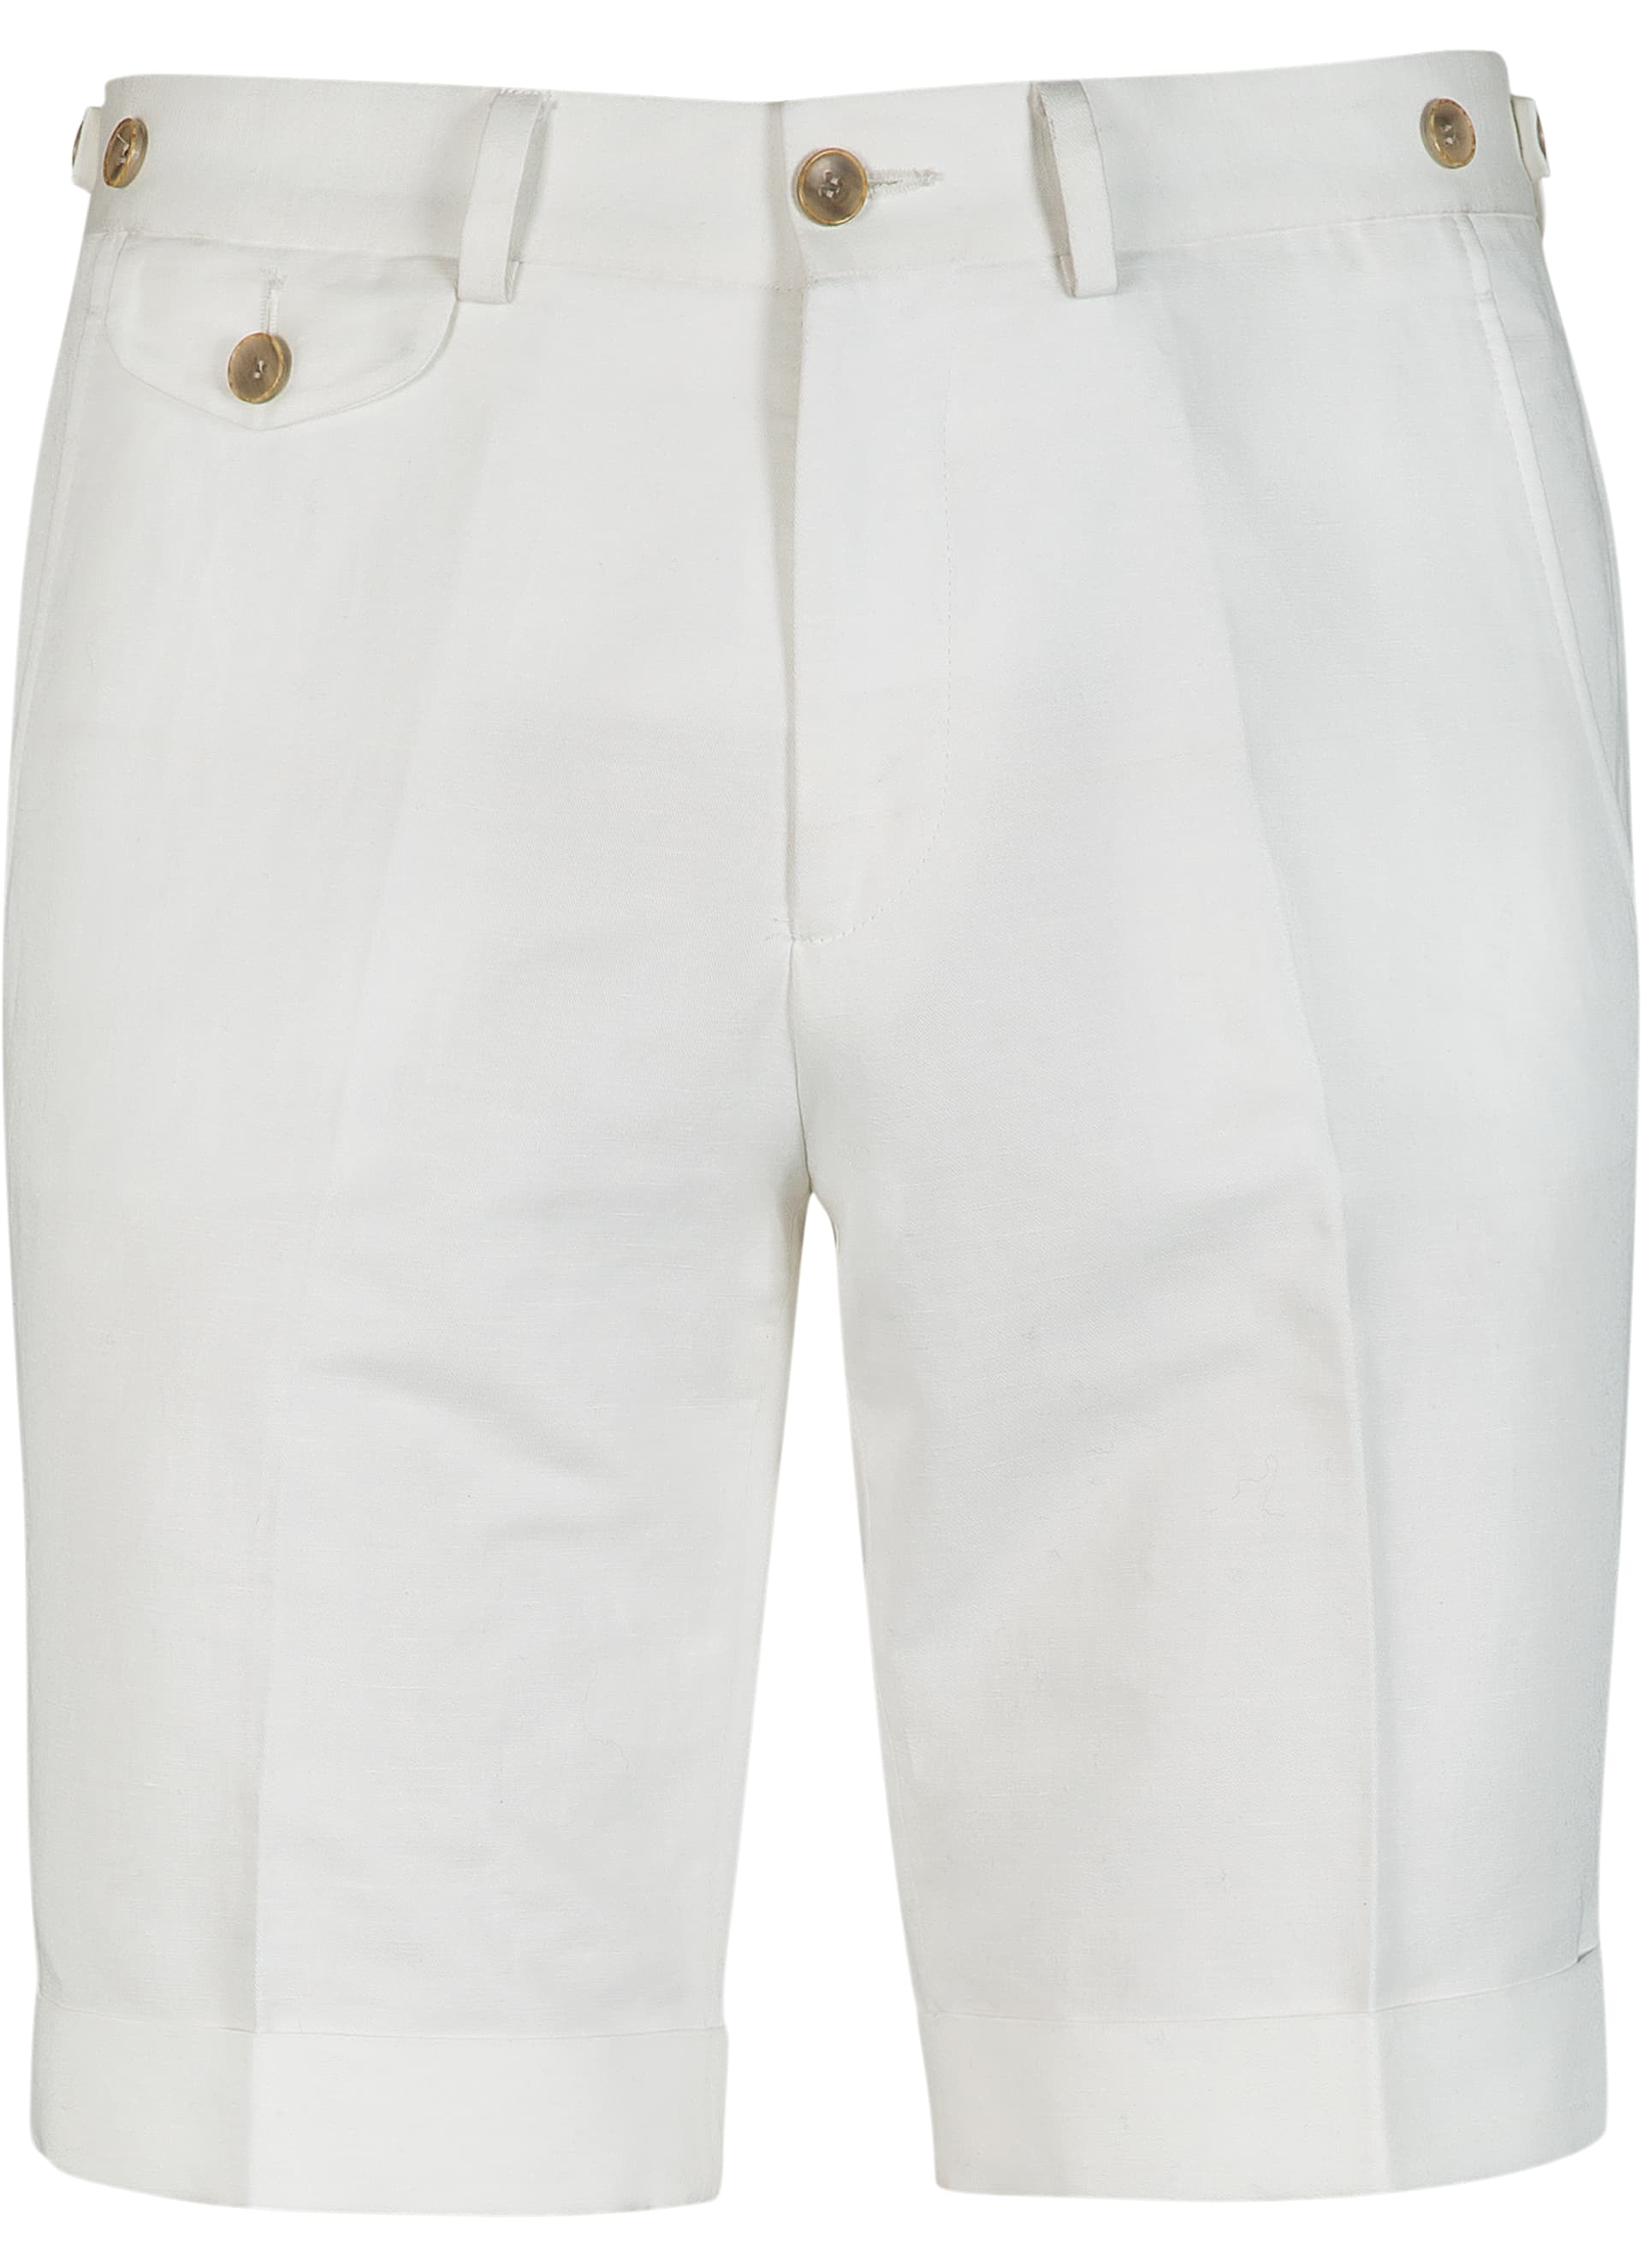 Off White Shorts B907i | Suitsupply Online Store